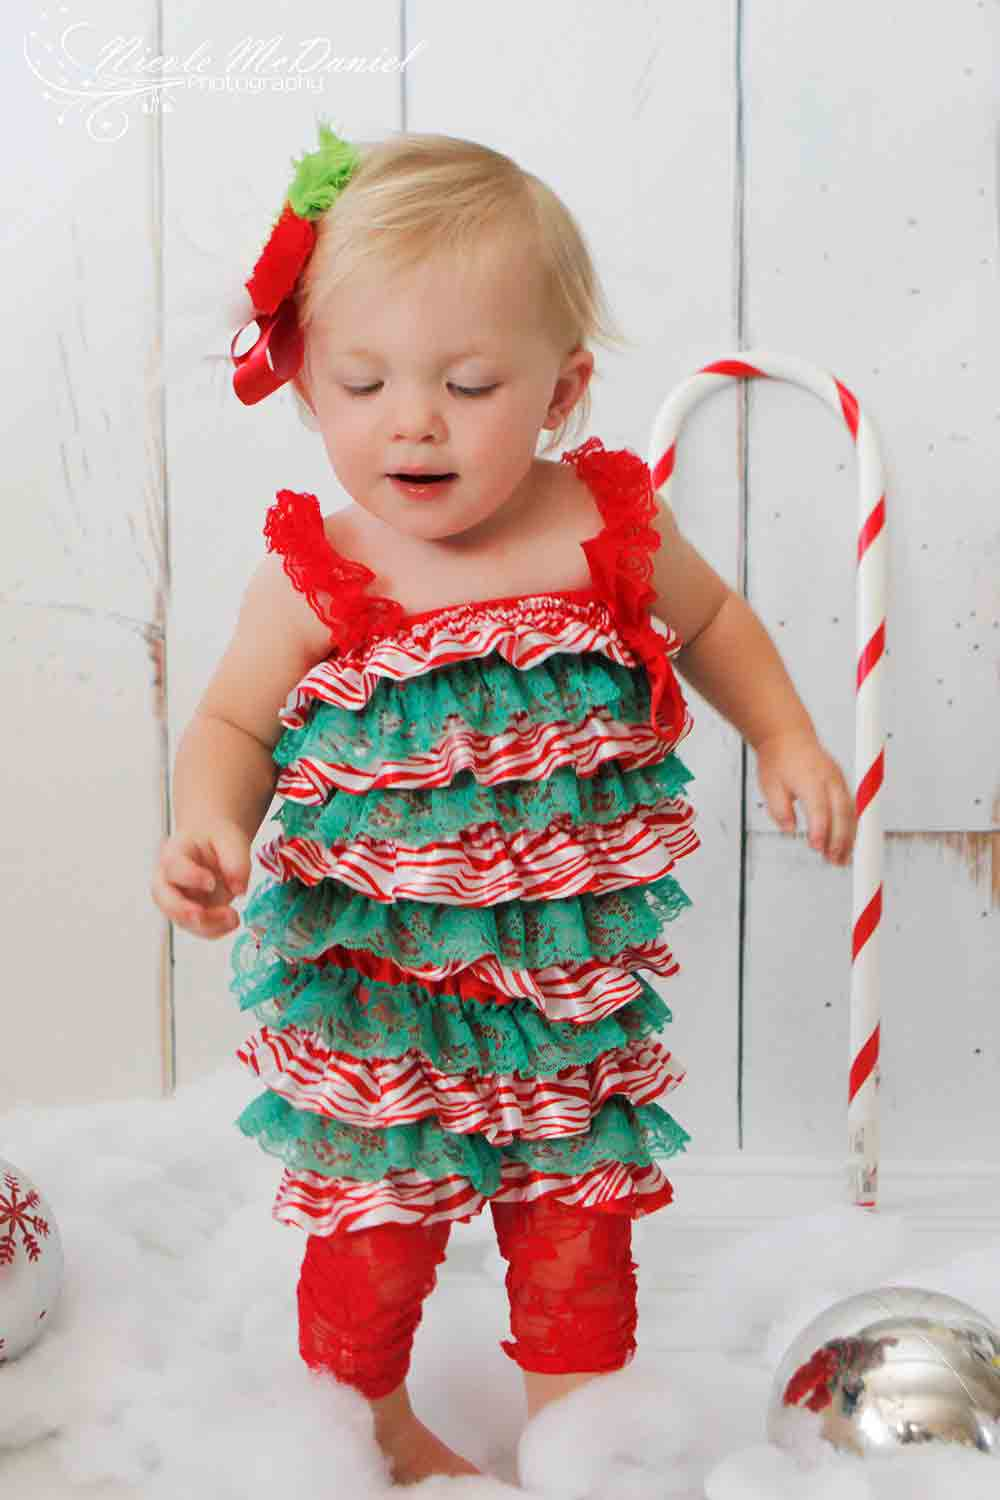 Shop for baby girls' clothing at dirtyinstalzonevx6.ga Shop dresses, outfits, bodysuits, onesies and more.